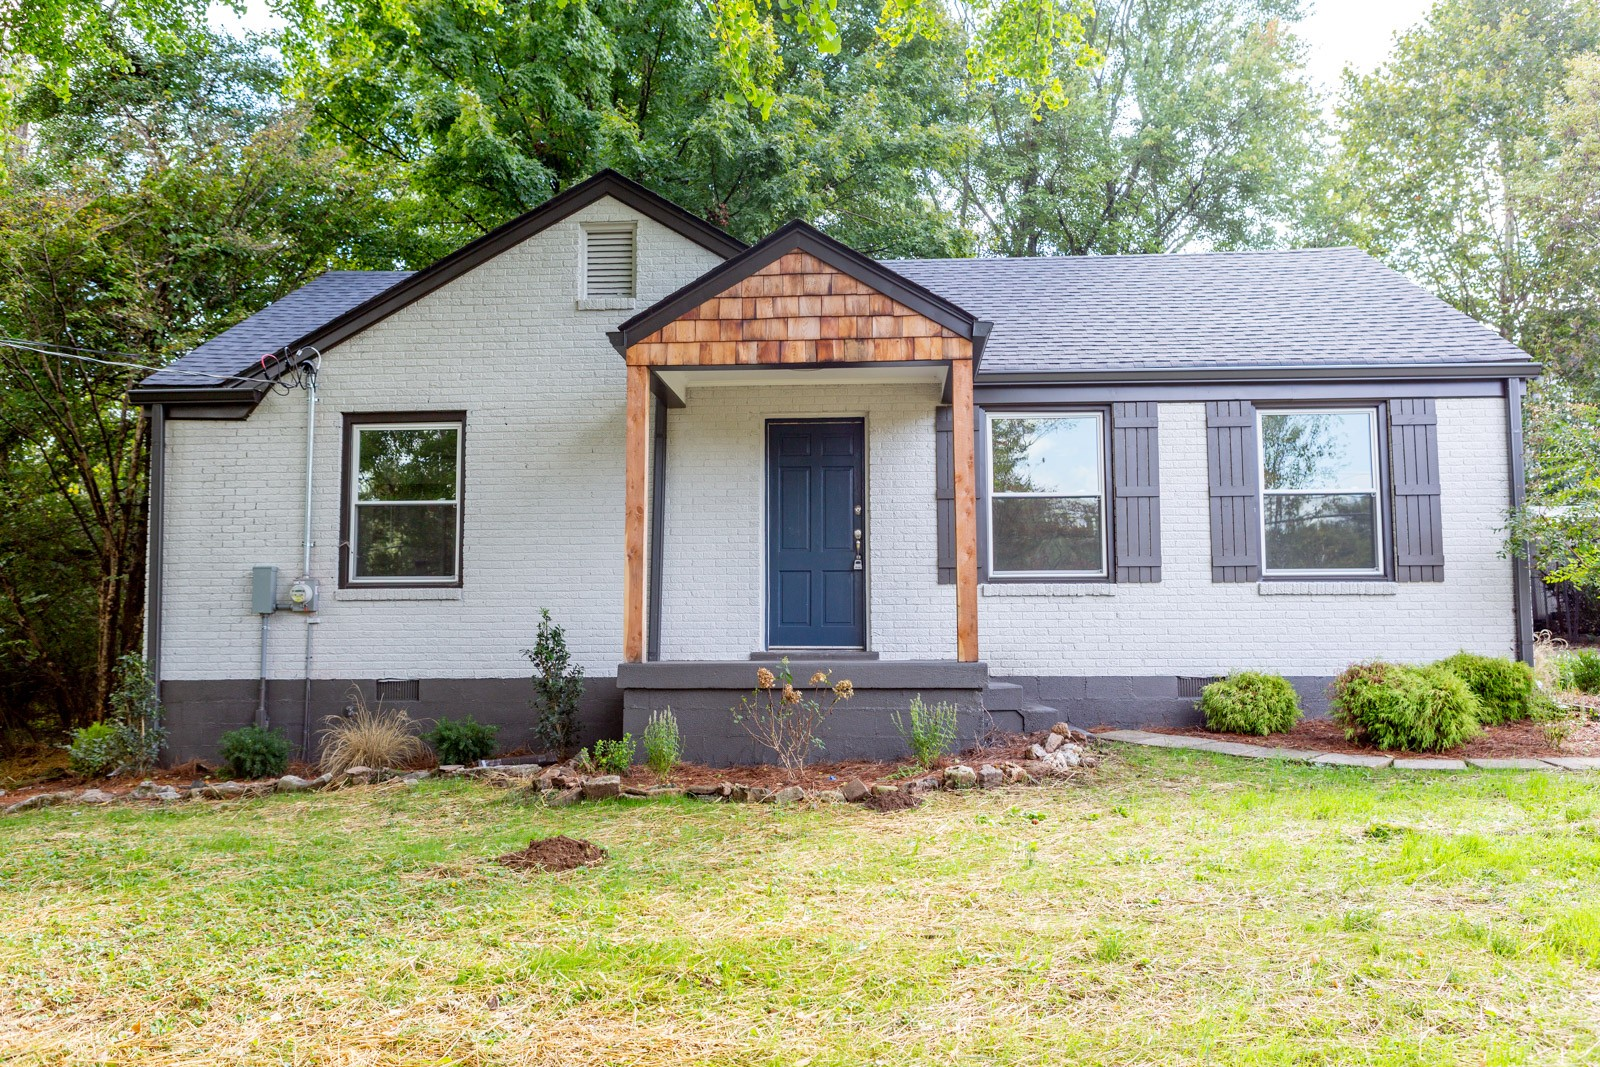 Come check out this newly renovated home in Nashville! Brand new everything from top to bottom - Stainless steel appliances, large open living room, and deep blue accents all around the home giving it a nice clean pop of color! Detached Garage! This home is move-in ready and won't last long, come get it before it's gone!